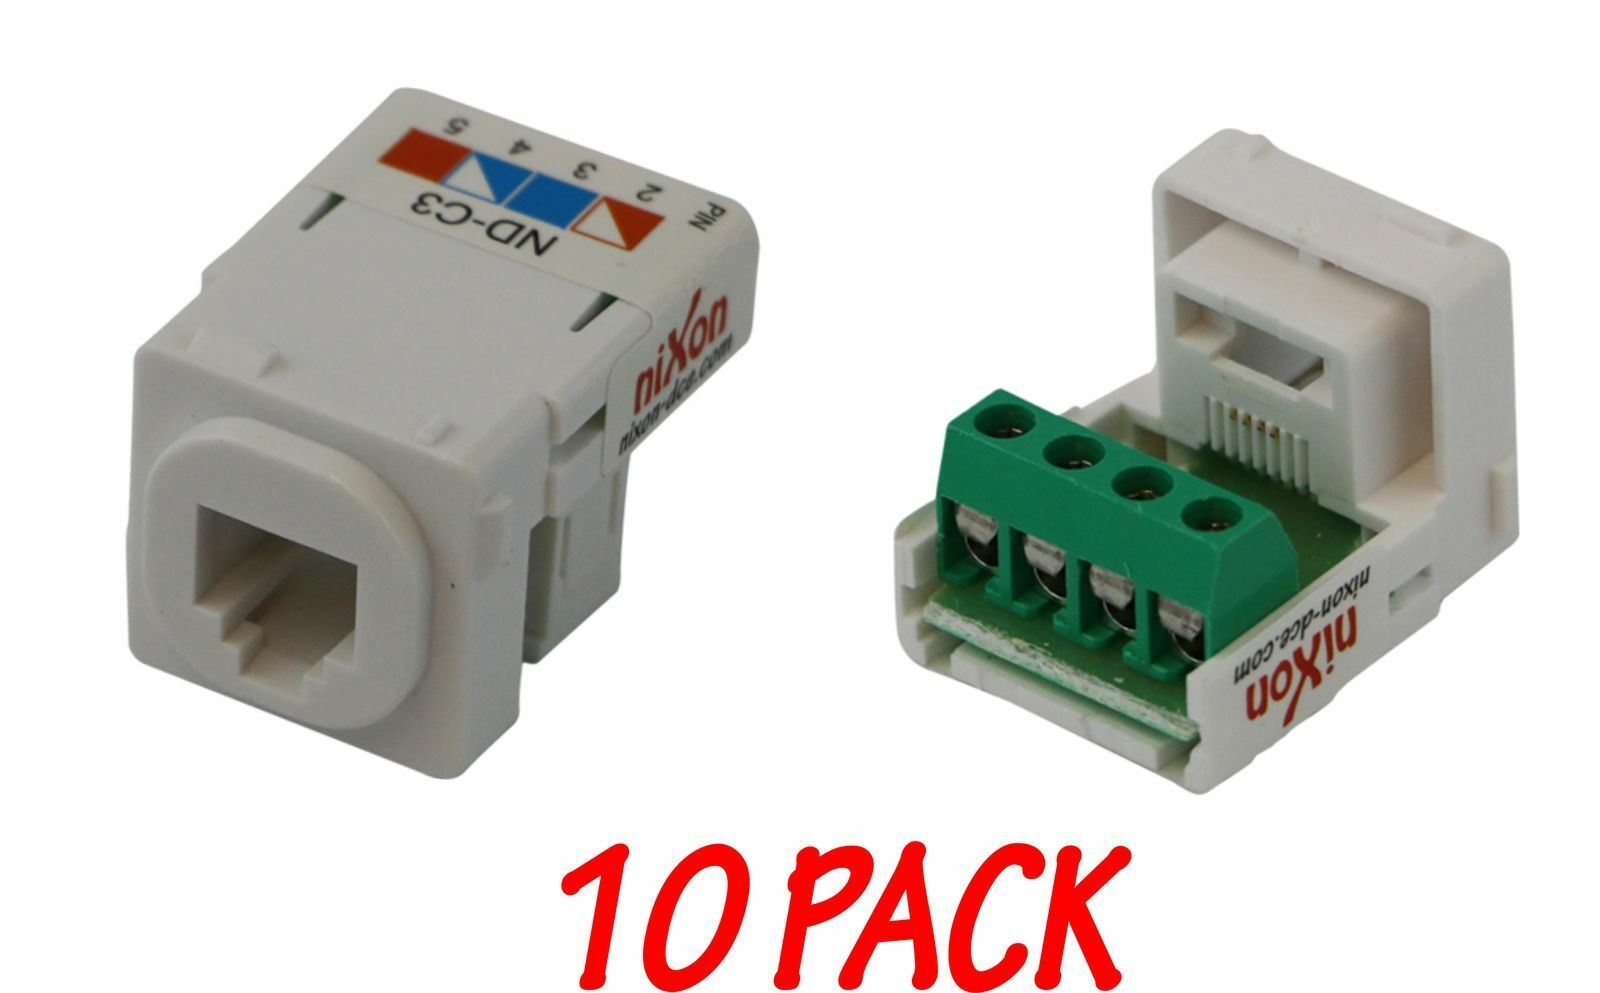 10 X Telephone Mech Telco Phone Cat3 Rj11 12 Inserts Jacks Wiring A Jack With Cat 3 Screw Type